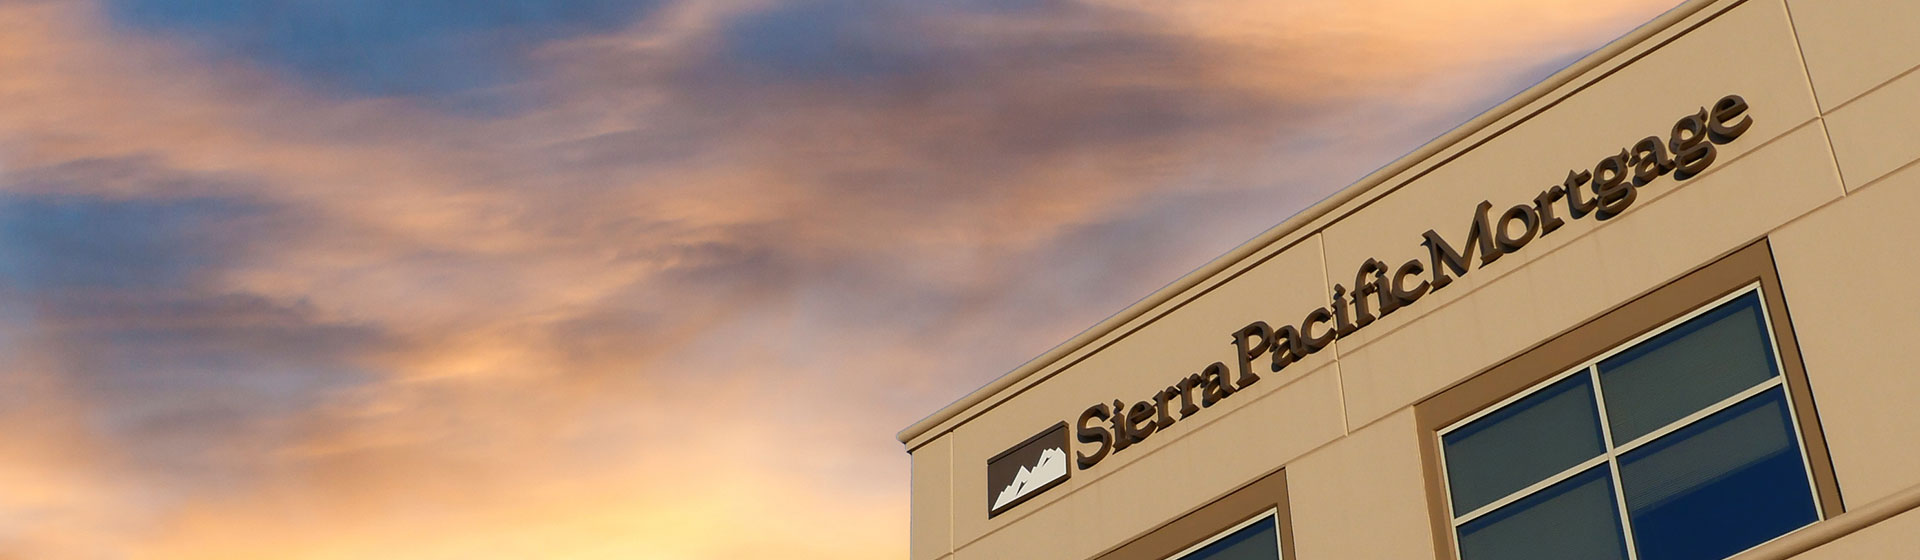 The Sierra Pacific Mortgage sign on the building.